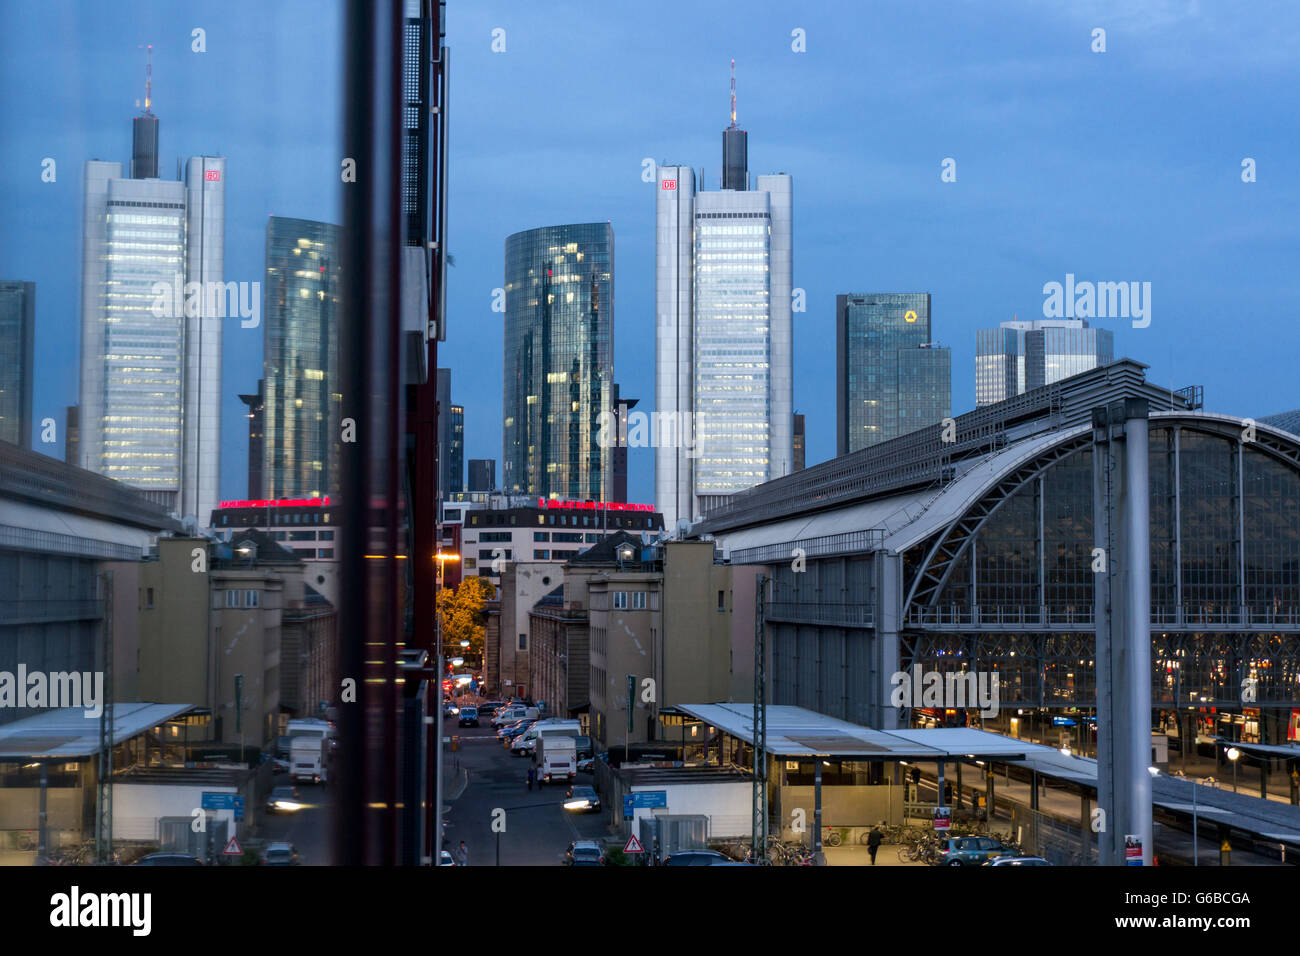 Germany: Skyline of Frankfurt with Skyper, Silberturm, Gallileo, Eurotower und Central Station (left to right). Stock Photo